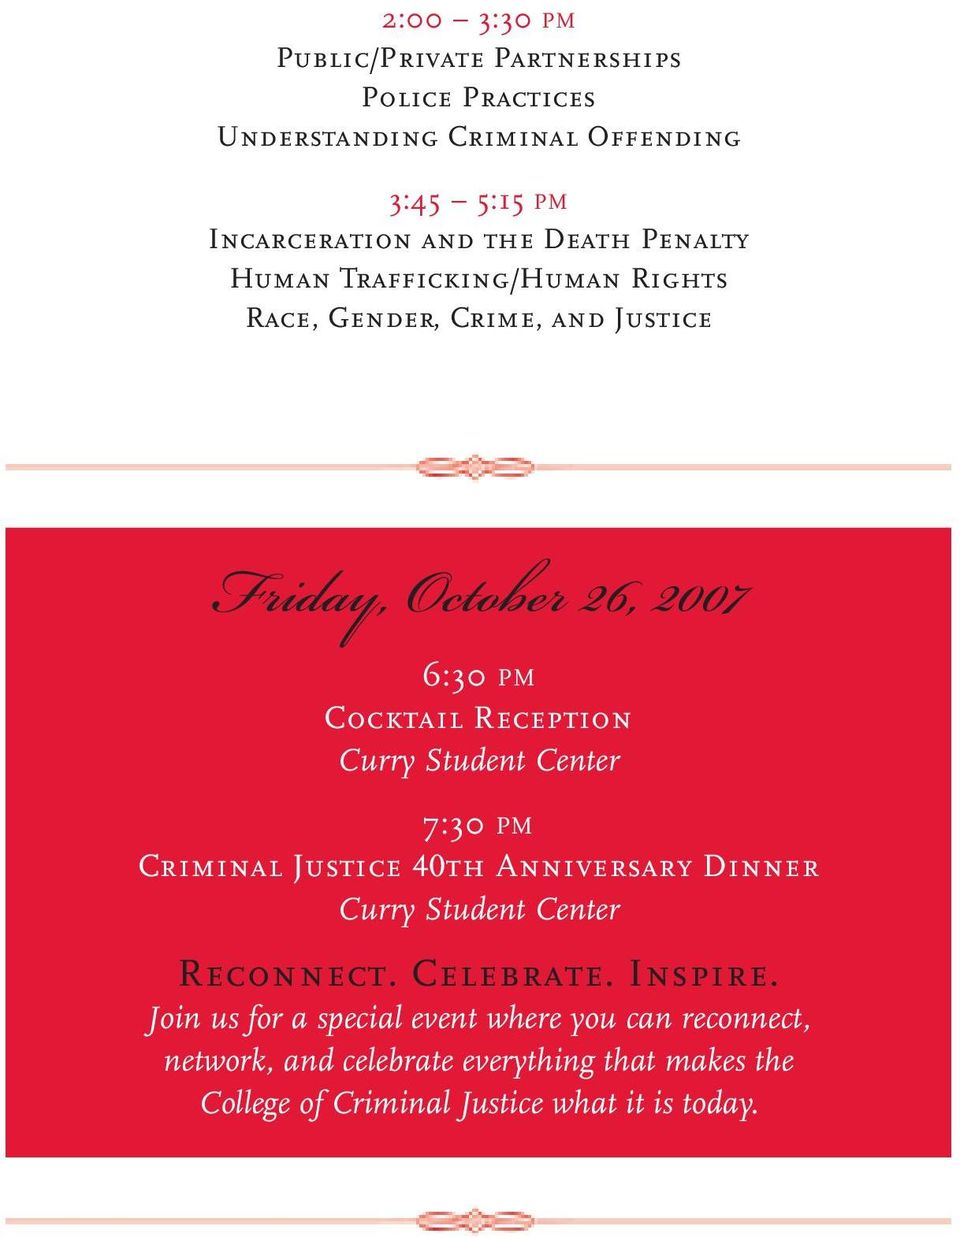 Student Center 7:30 PM Criminal Justice 40th Anniversary Dinner Curry Student Center Reconnect. Celebrate. Inspire.